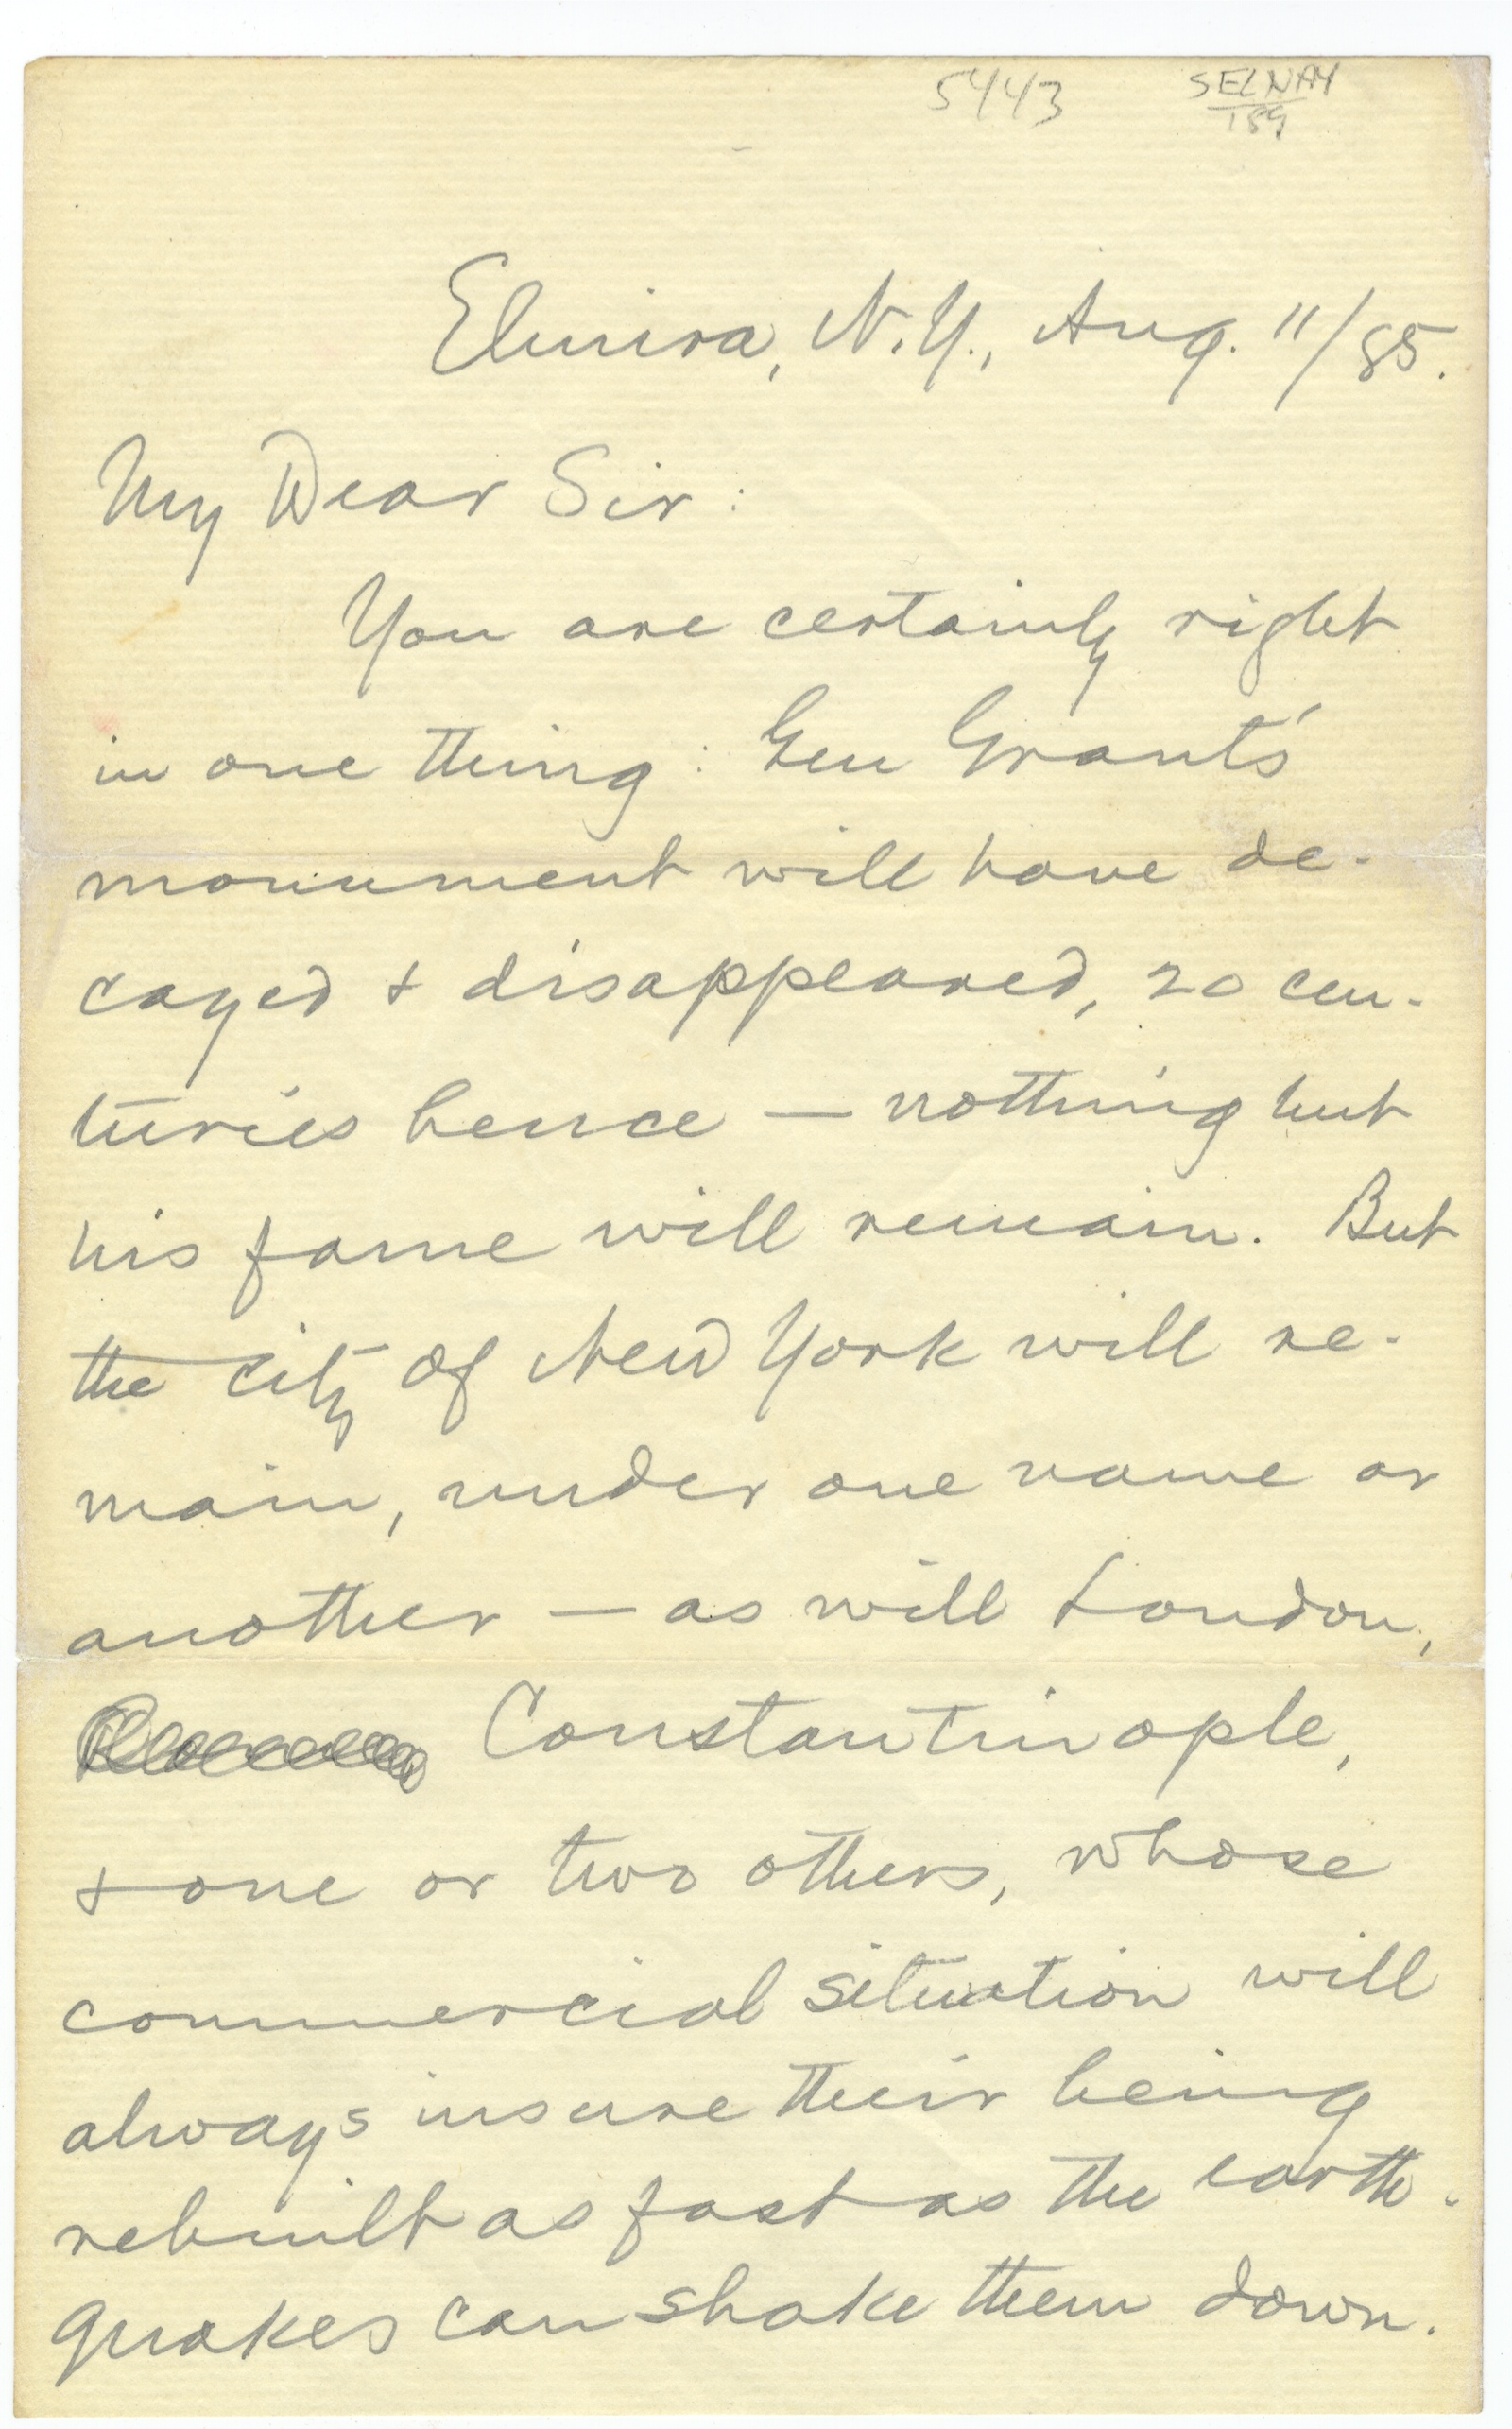 Mark Twain, on the Heroic Writing, and Fantastic Success, of Ulysses S. Grant's Memoirs